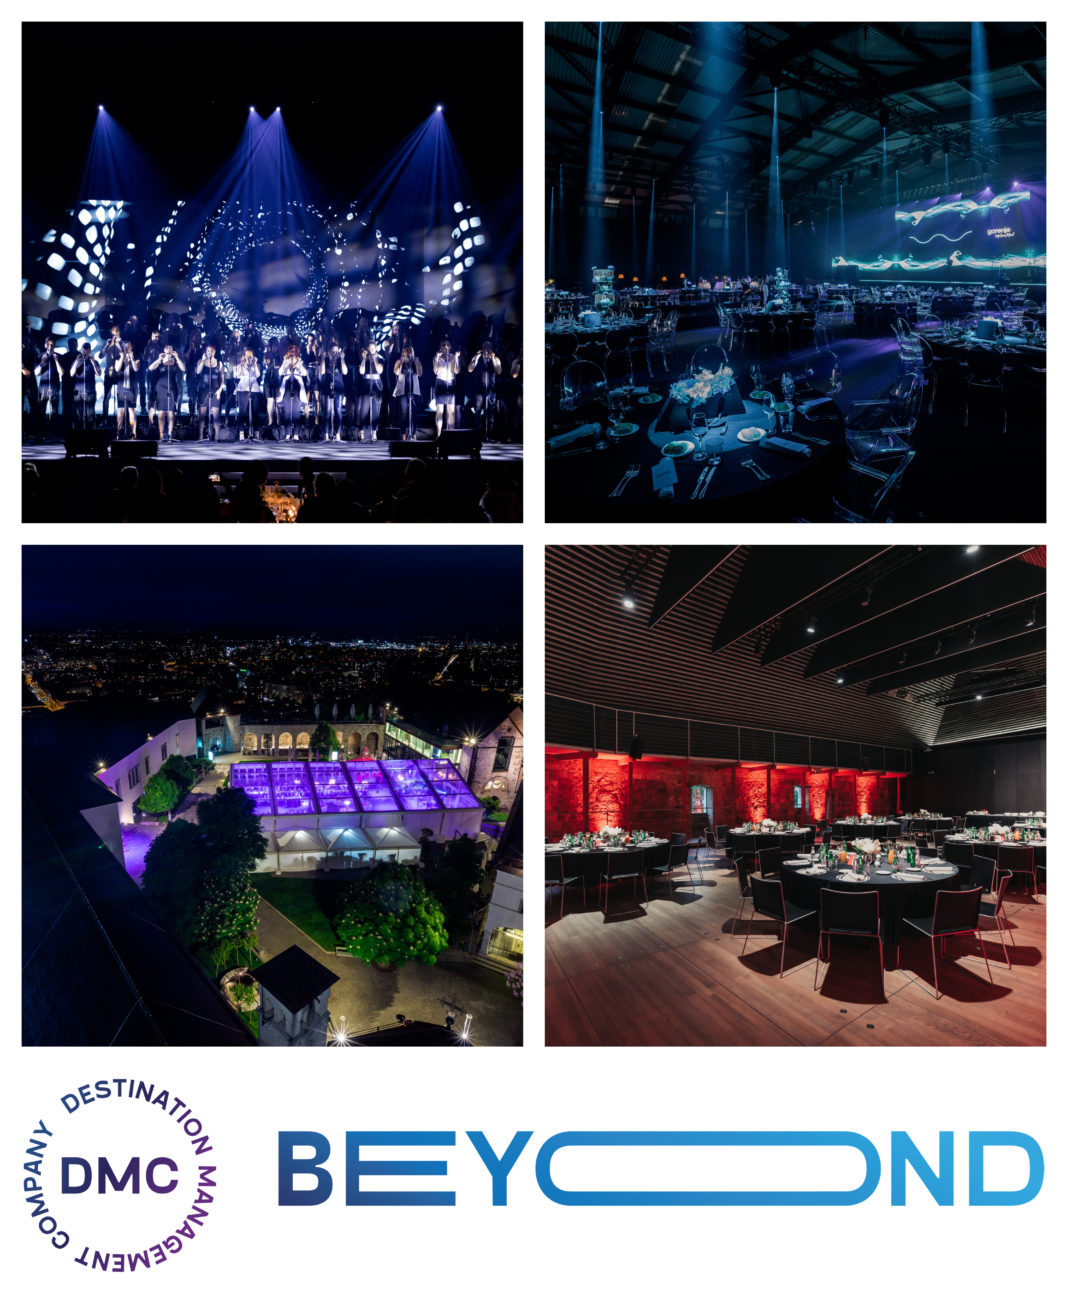 Beyond DMC, Collage of Events